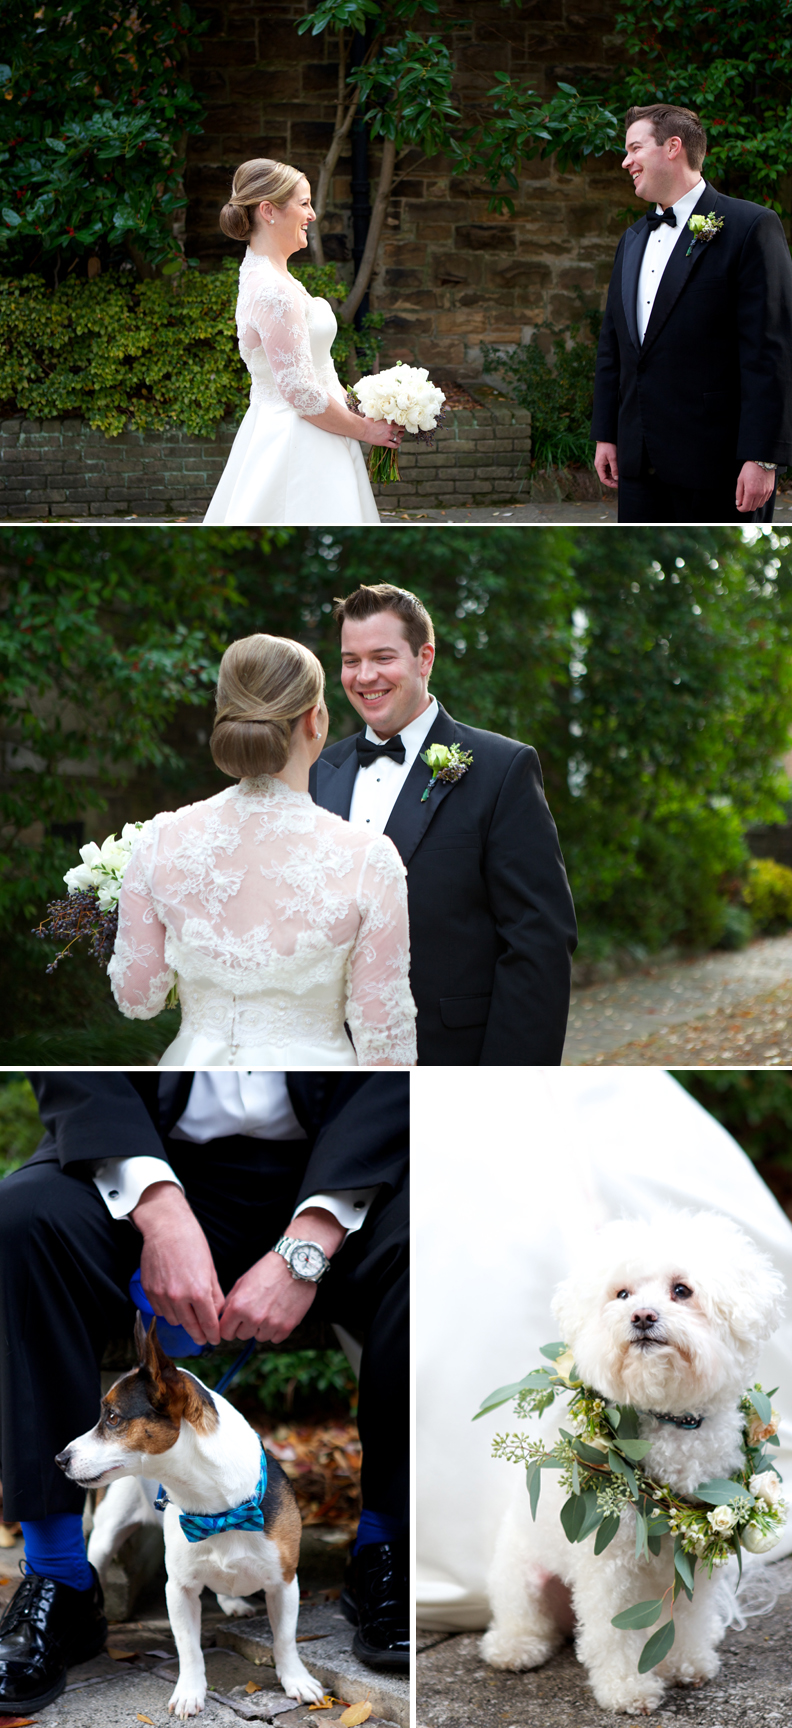 Harrison_Heacock_Wedding_Arden_Photography2.jpg